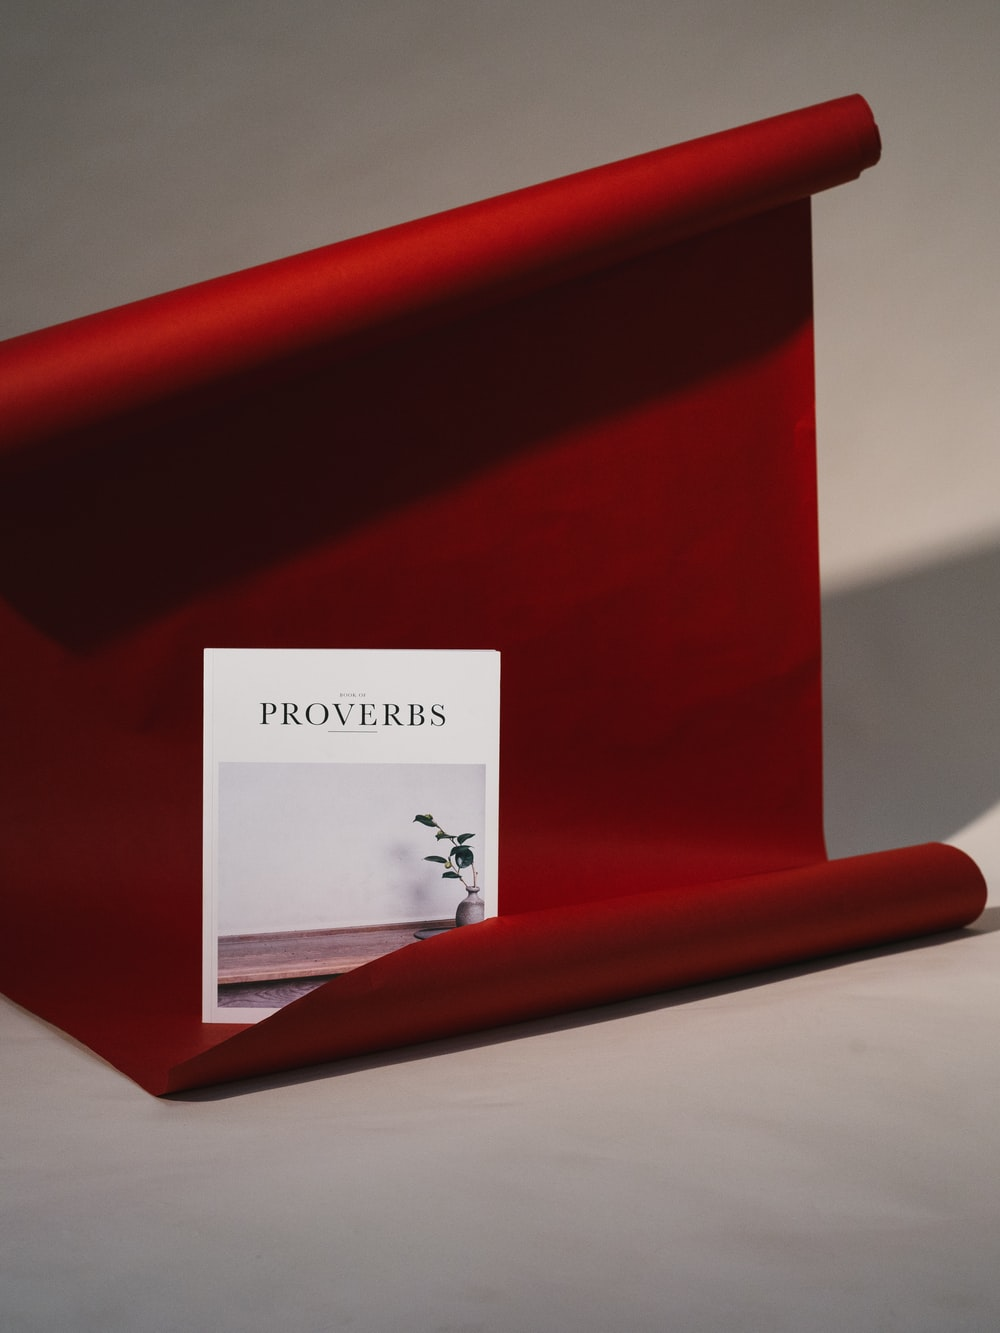 Proverbs card on red scroll